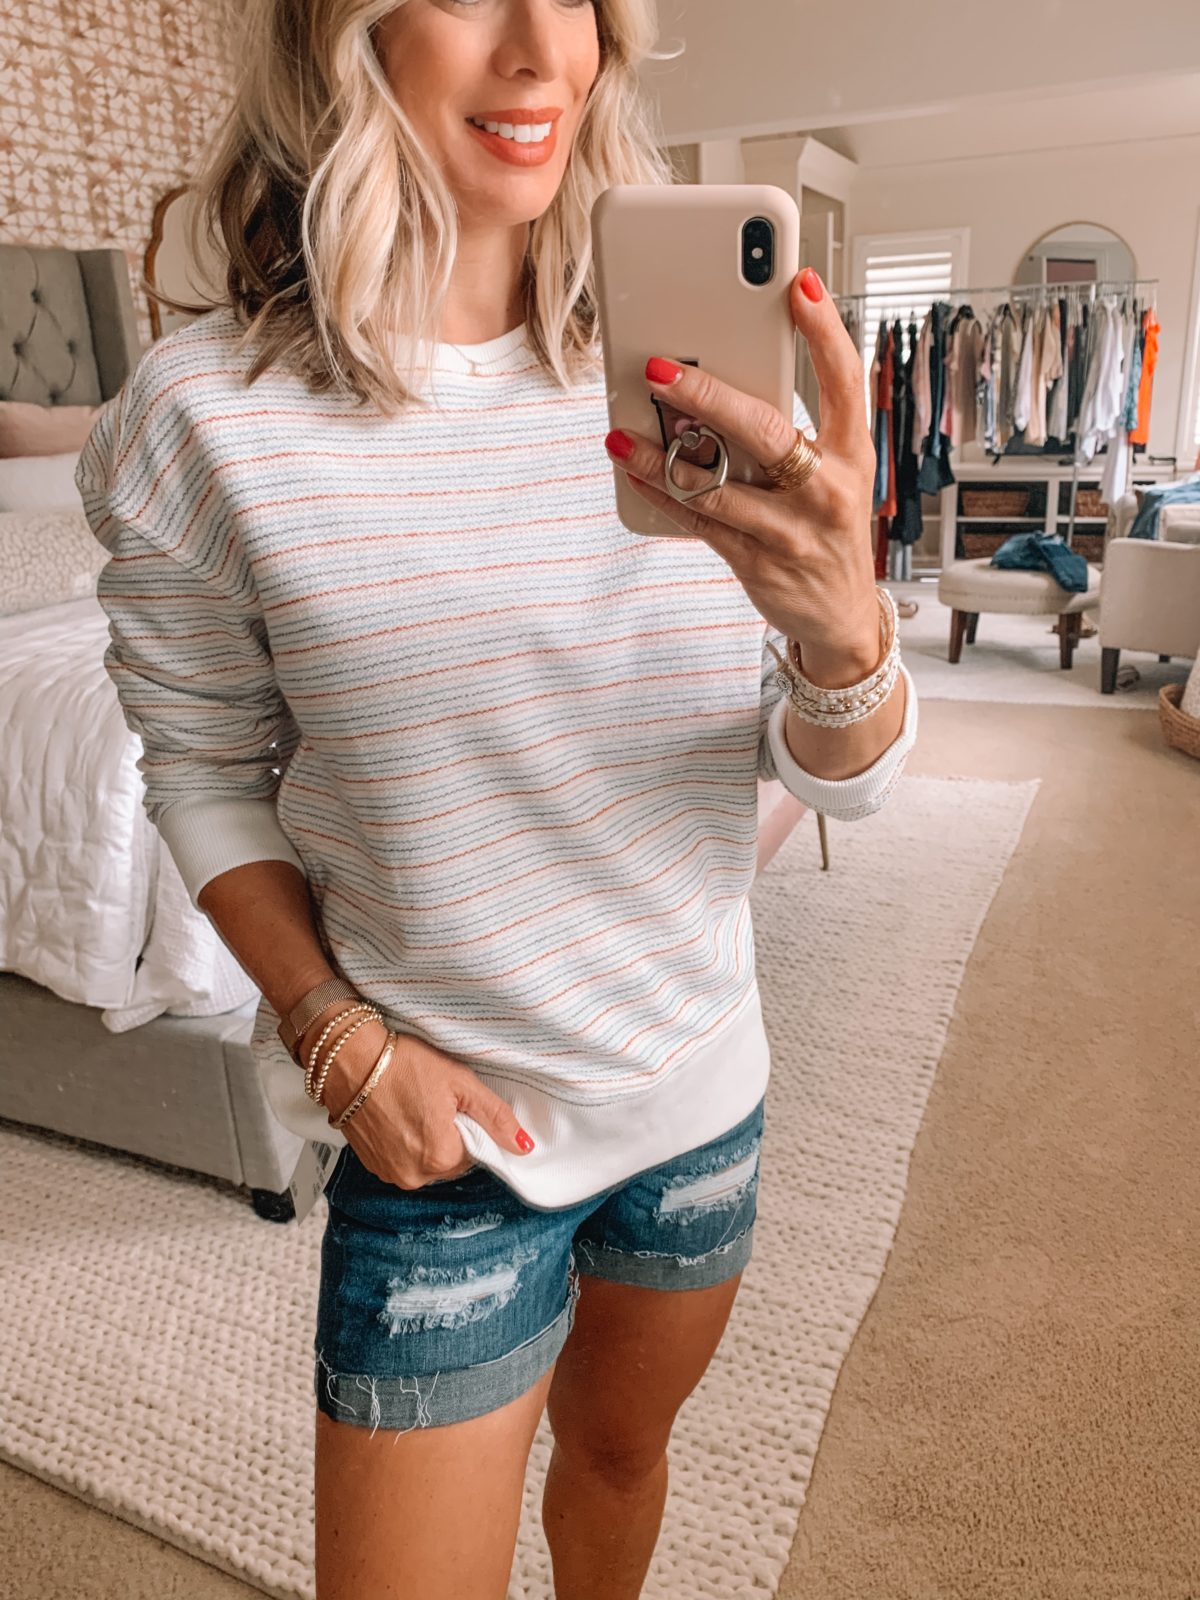 Dressing Room Finds Nordstrom and Target, Striped Sweatshirt, Denim Shorts, Criss Cross Slides